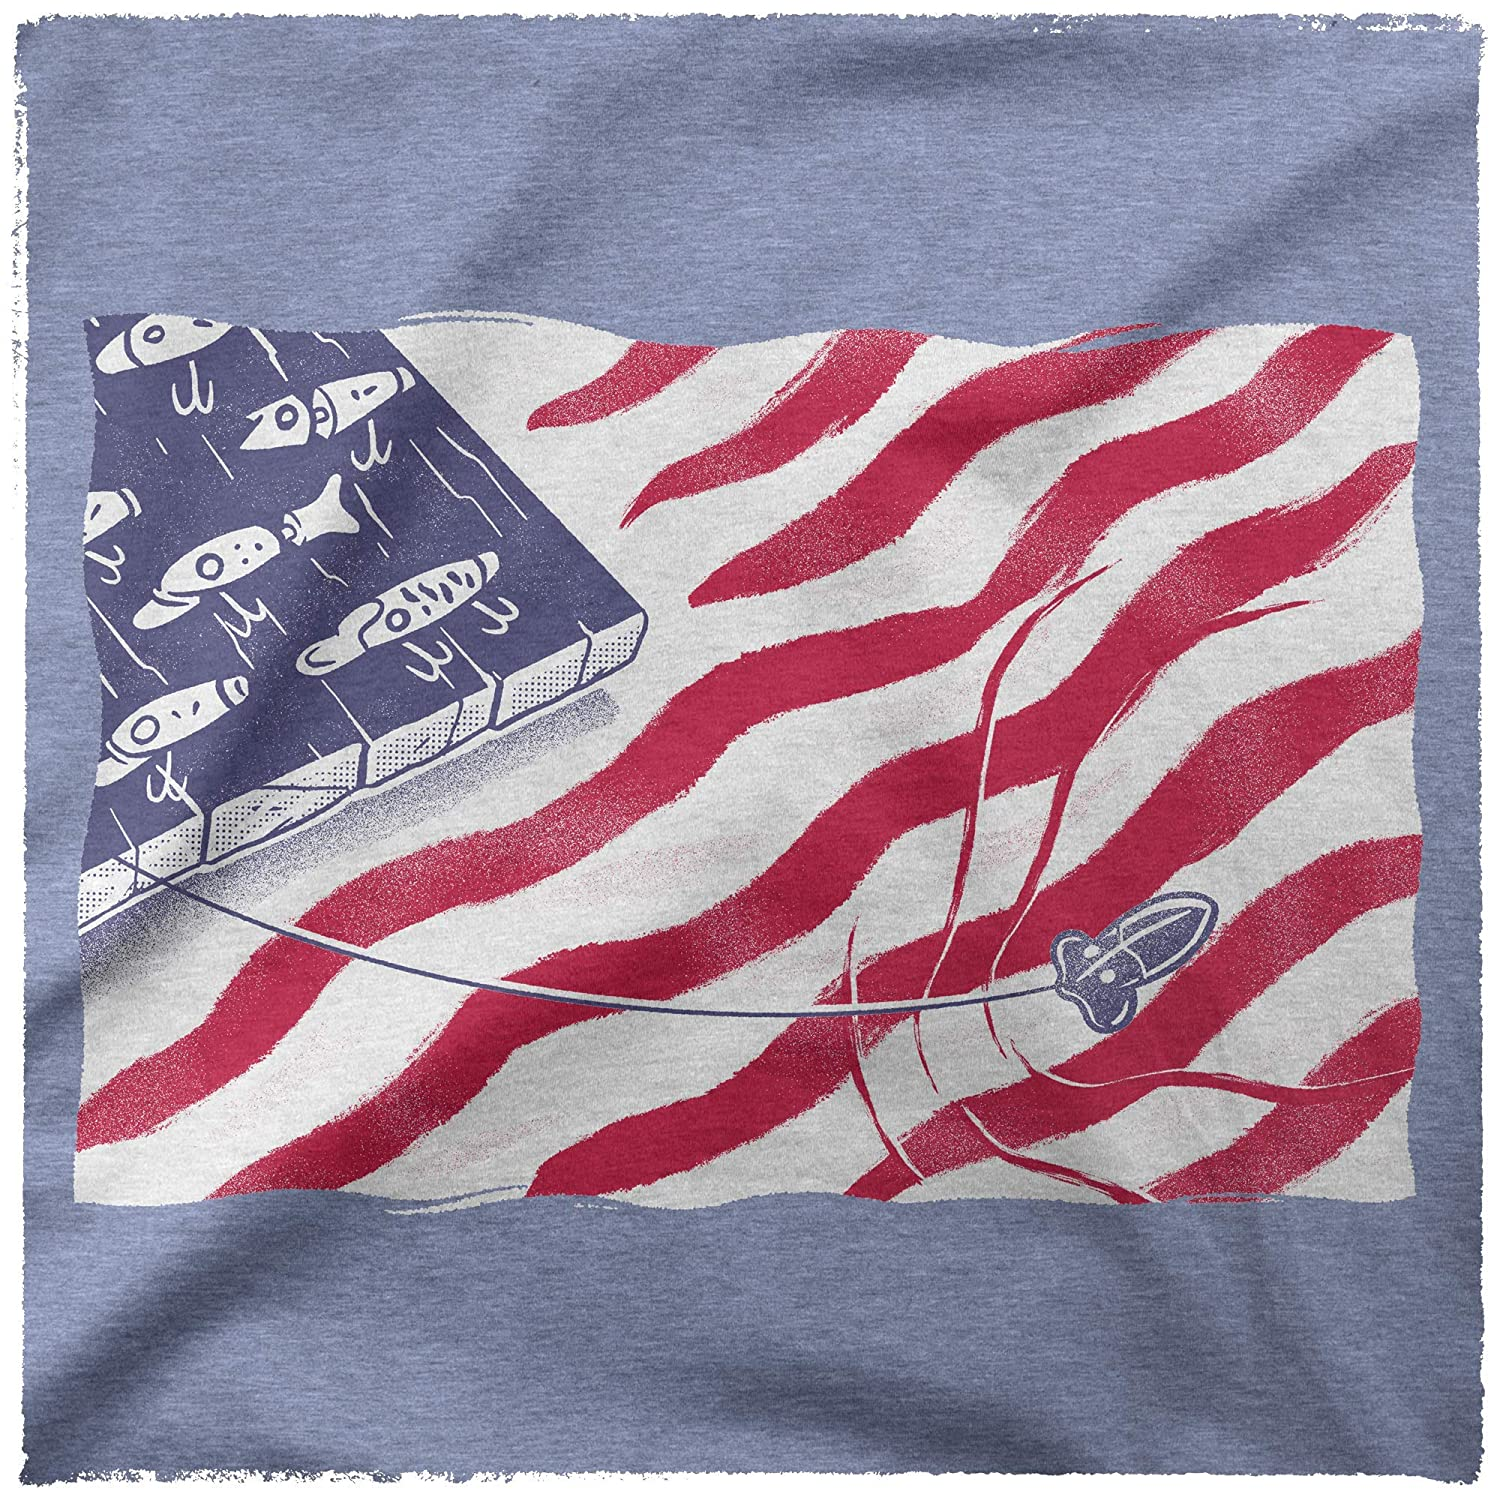 Fishing Gifts for Men Independence Day Brewery Funny T-Shirts for Men Clarks Bait Shop Patriotic Shirts for Men